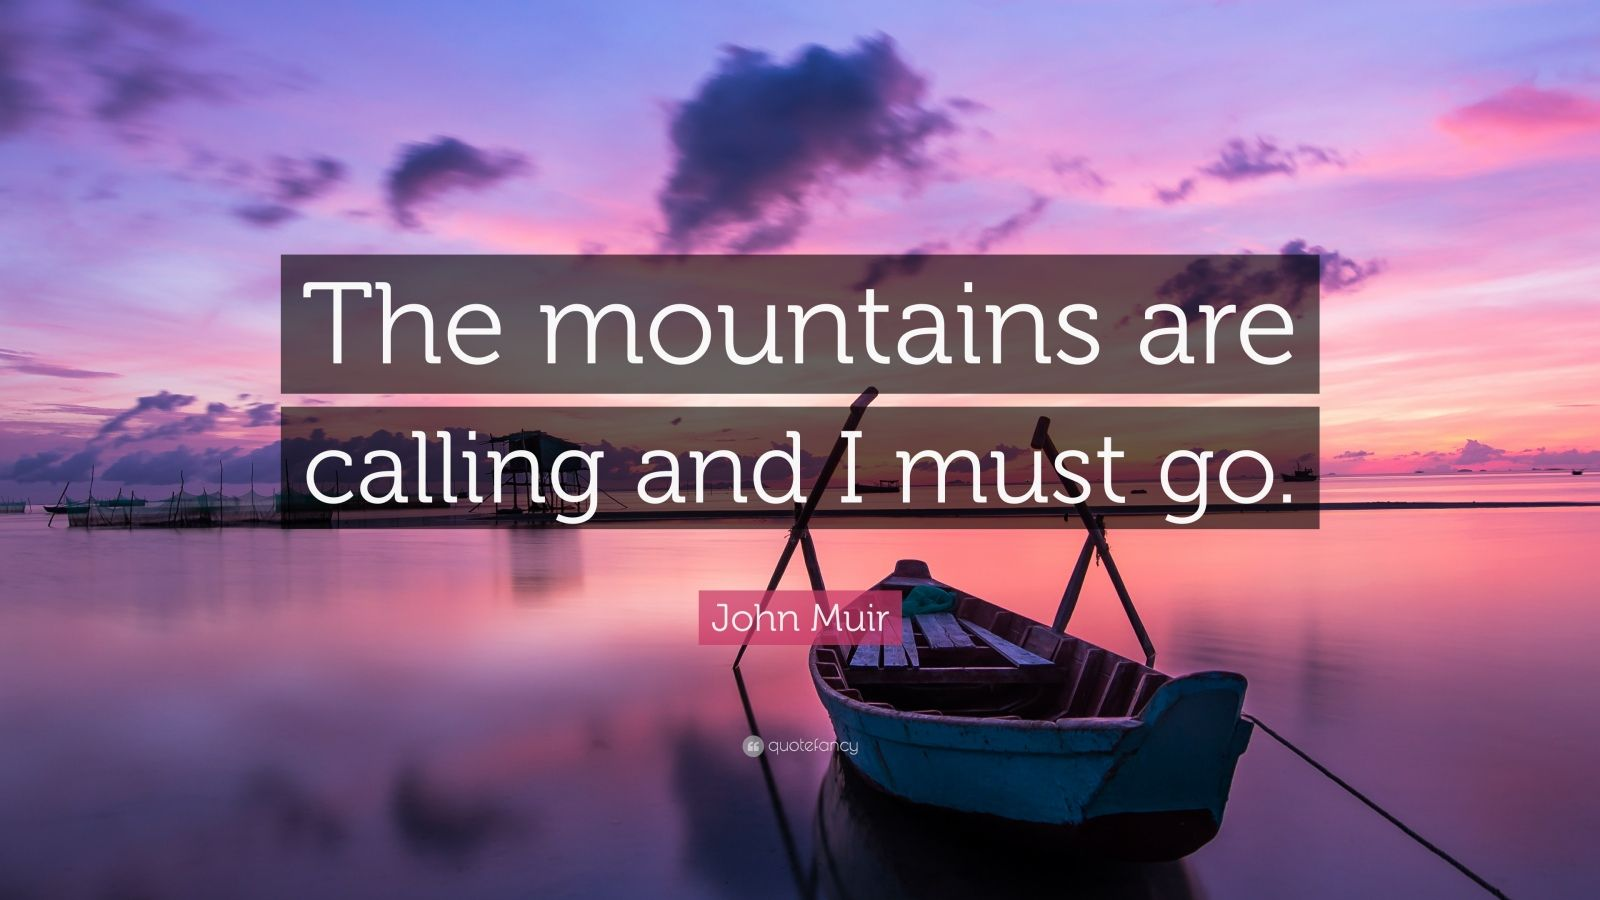 Henry David Thoreau Wallpaper Quote John Muir Quote The Mountains Are Calling And I Must Go